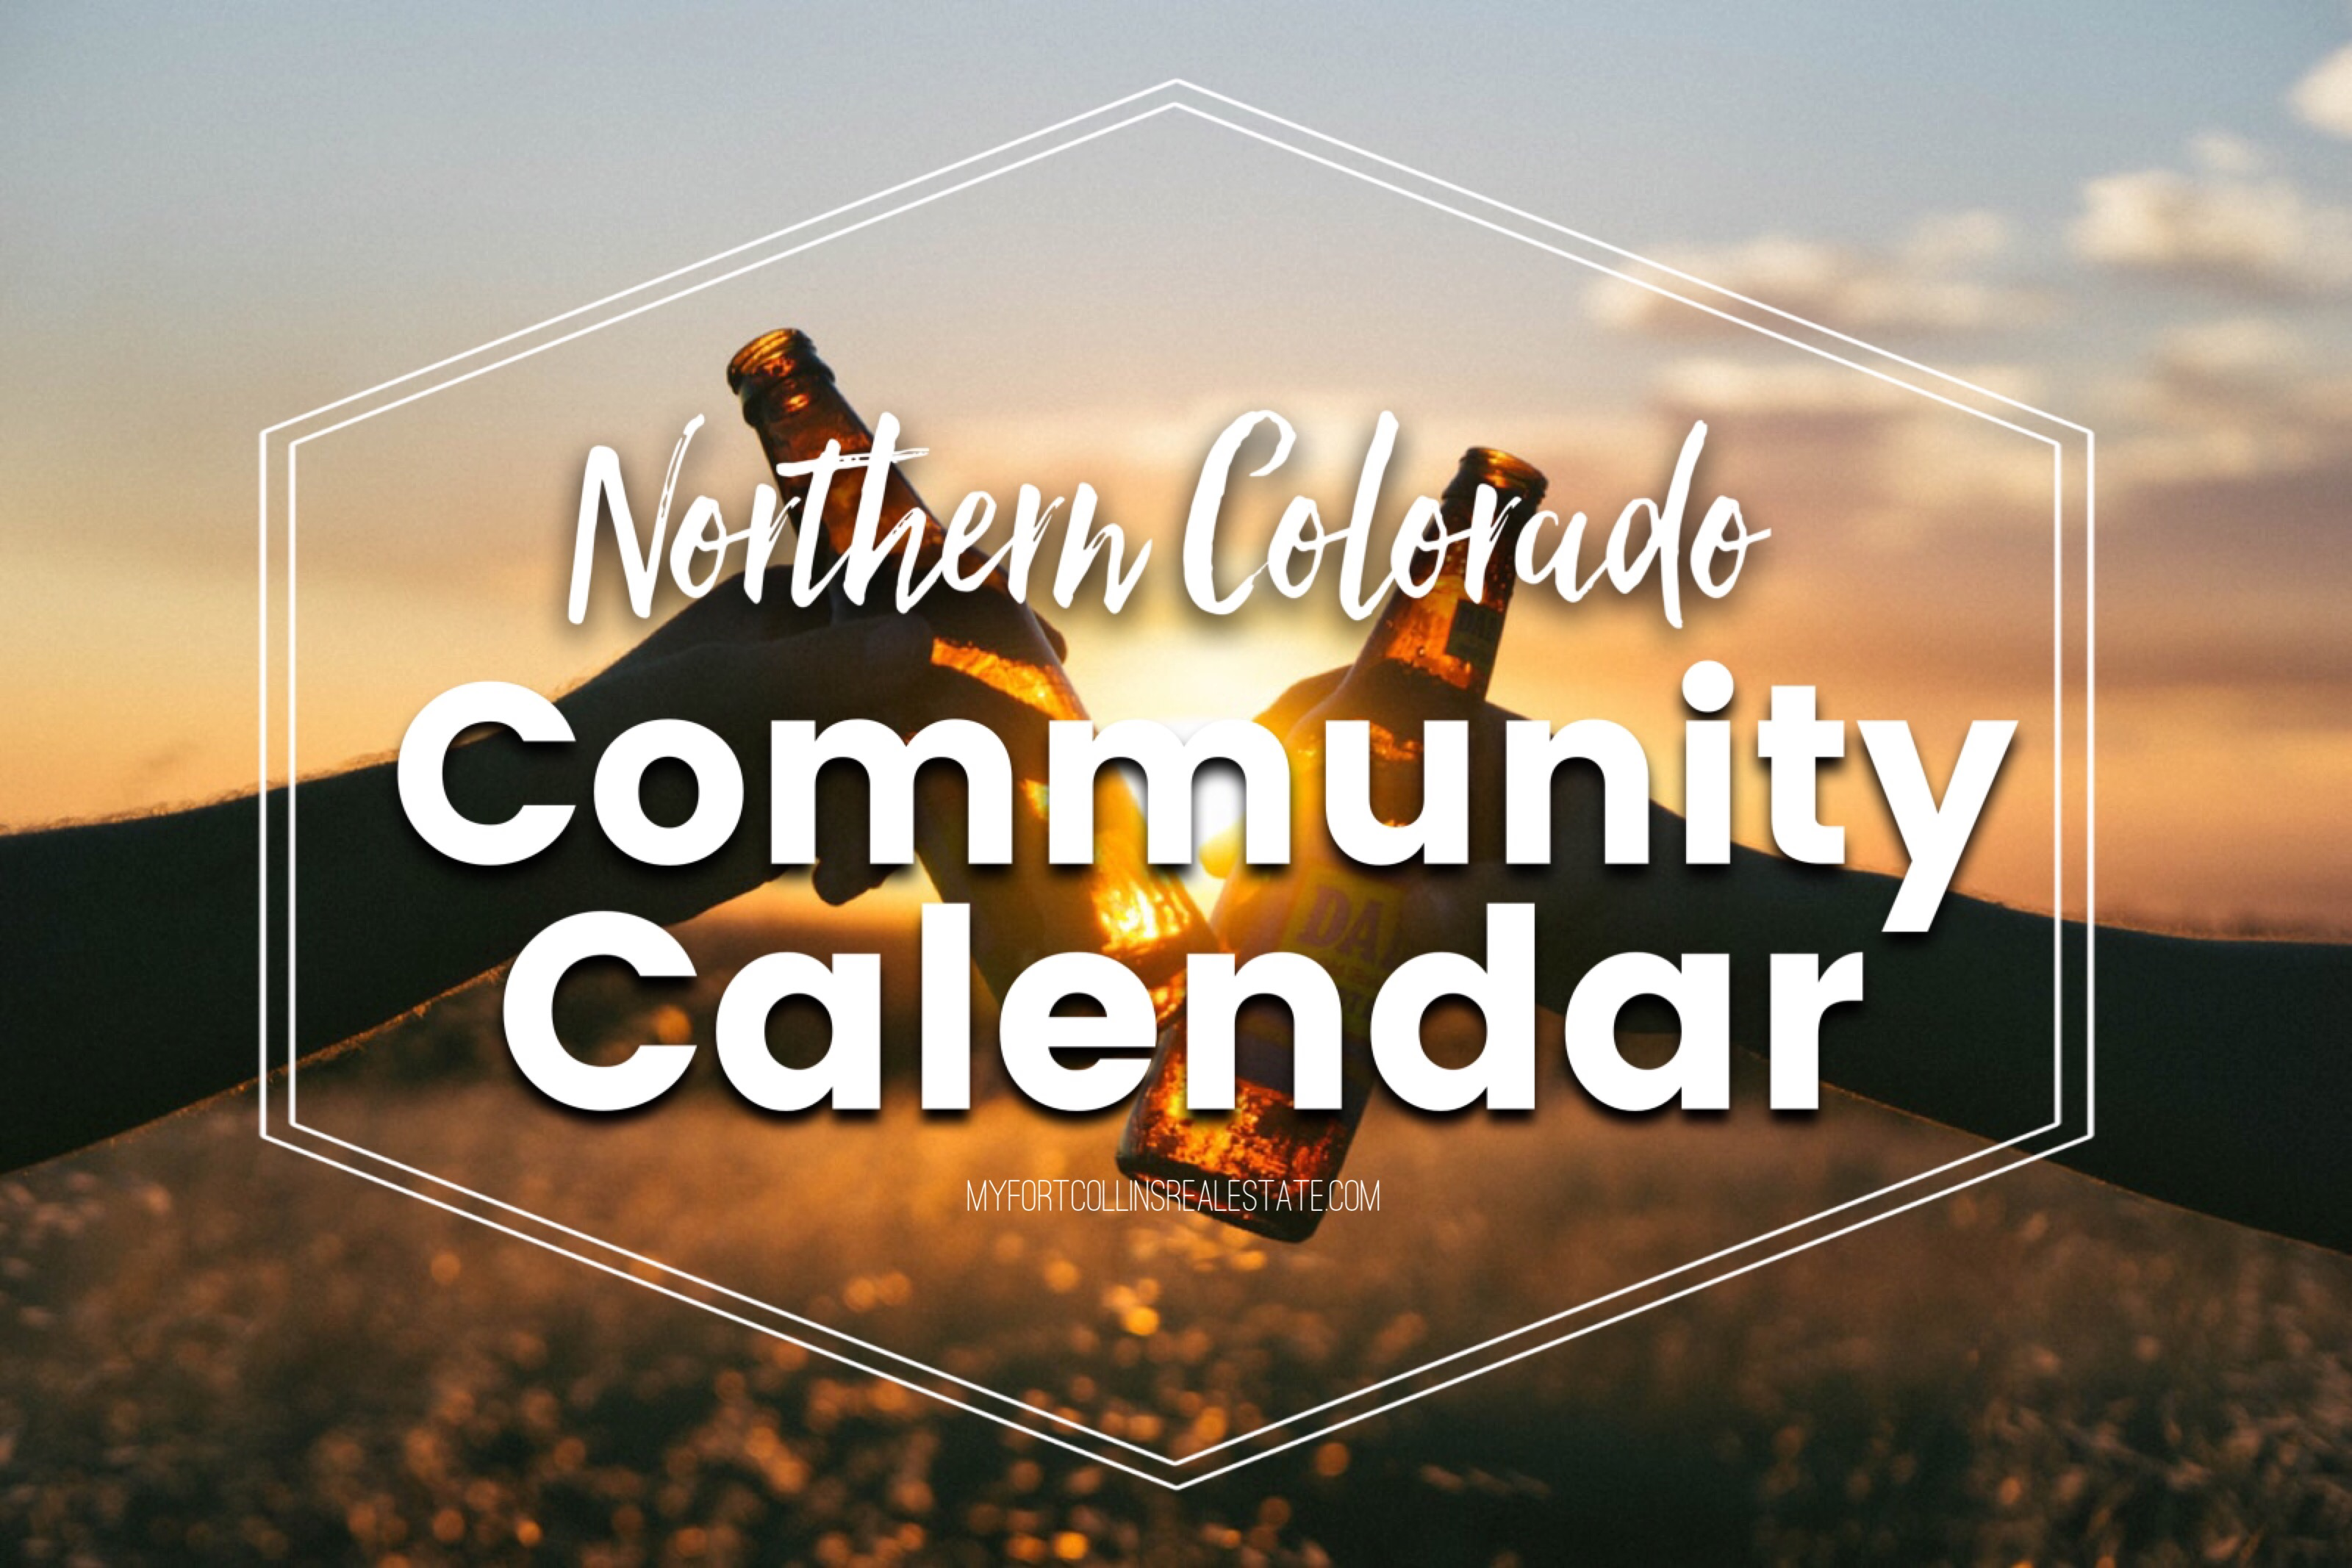 Things to do in Fort Collins, Loveland, Greeley, Windsor and Surrounding Northern Colorado, Northern Colorado Community Calendar, Fort Collins Events this weekend, Real Estate and Lifestyle in Northern Colorado, a blog by Joanna Gyrath, Fort Collins Realtor